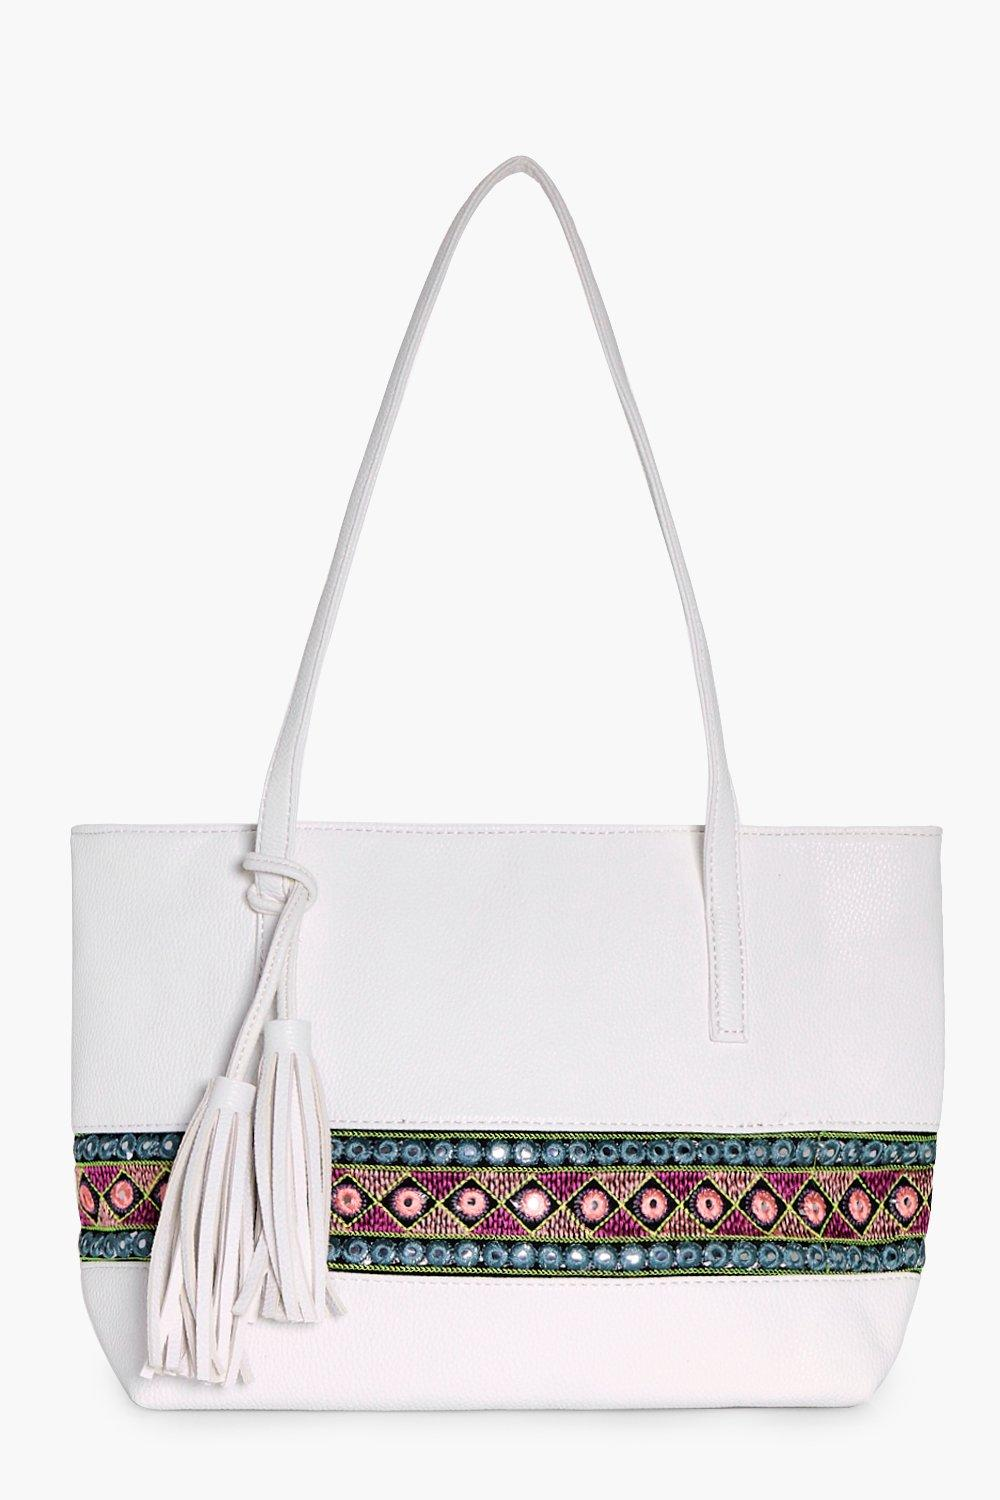 Aztec Mirror Trim Shopper Bag - white - Lucia Azte